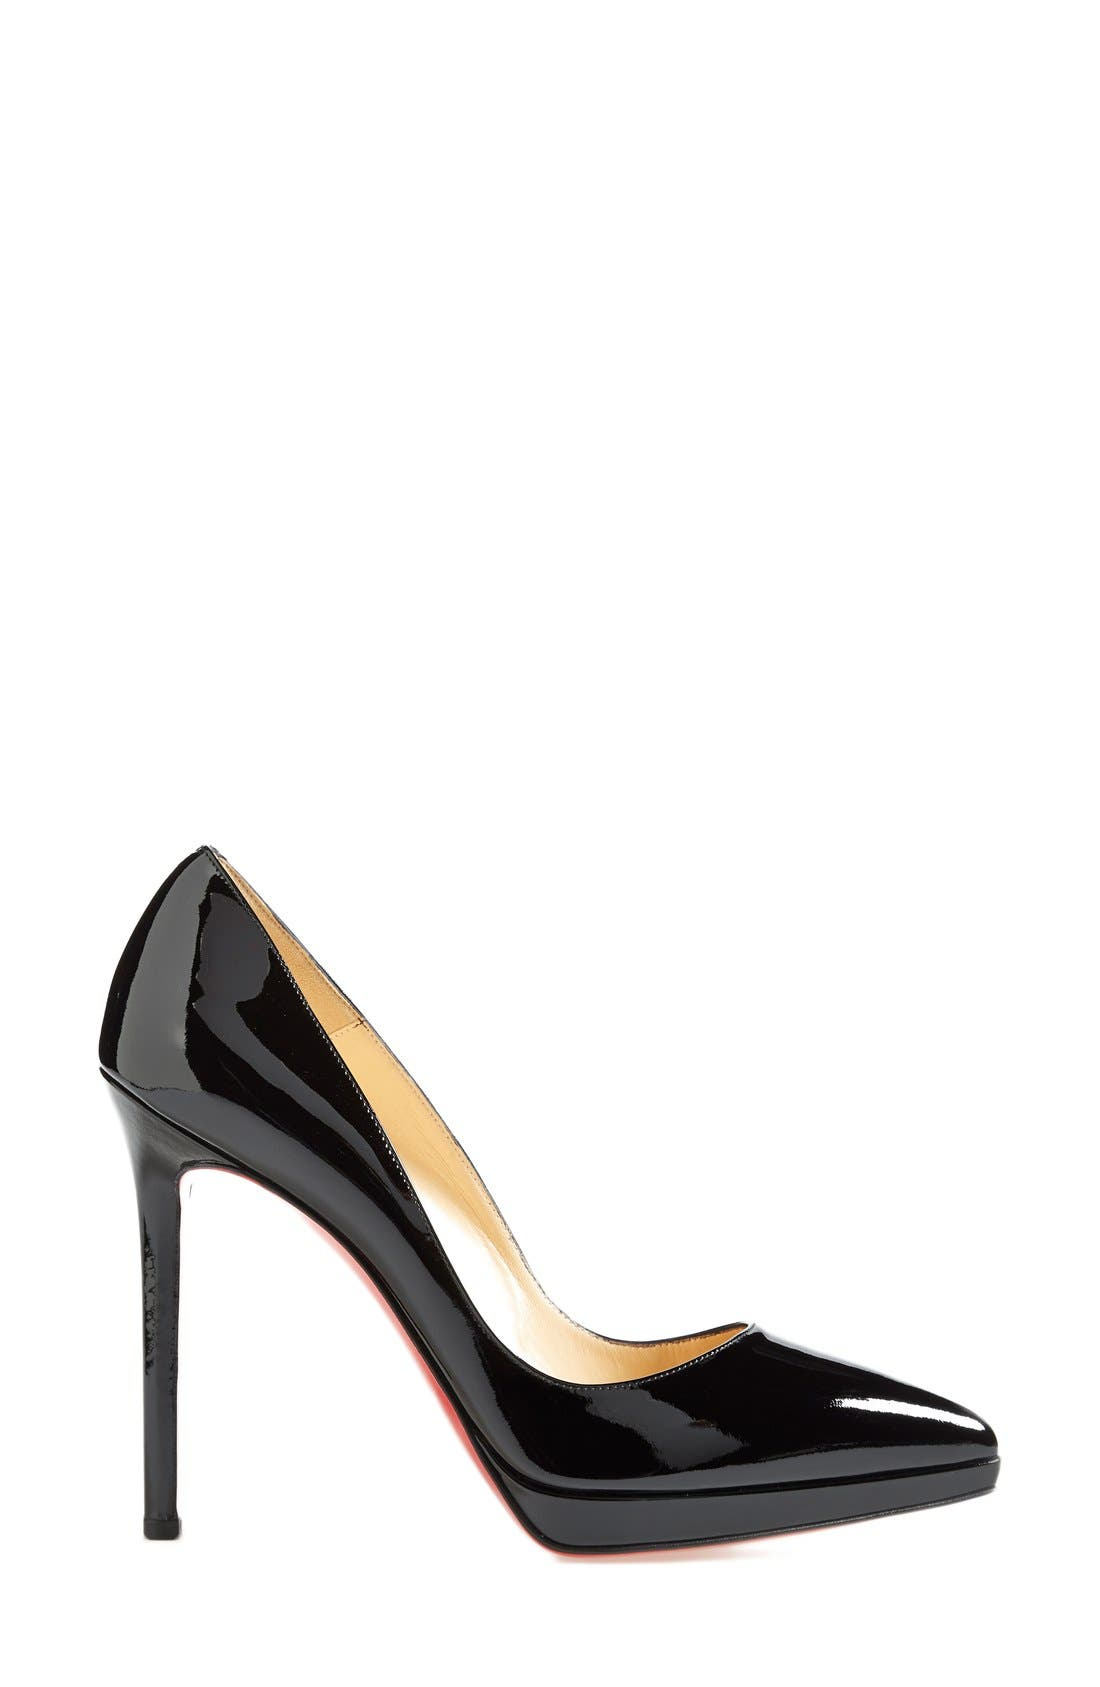 'Pigalle Plato' Pointy Toe Pump,                             Alternate thumbnail 4, color,                             001